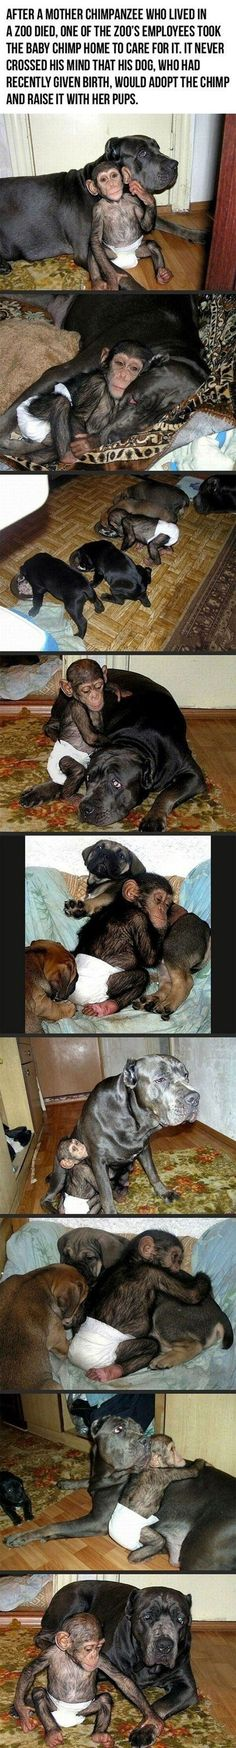 dog adopts chimpanzee